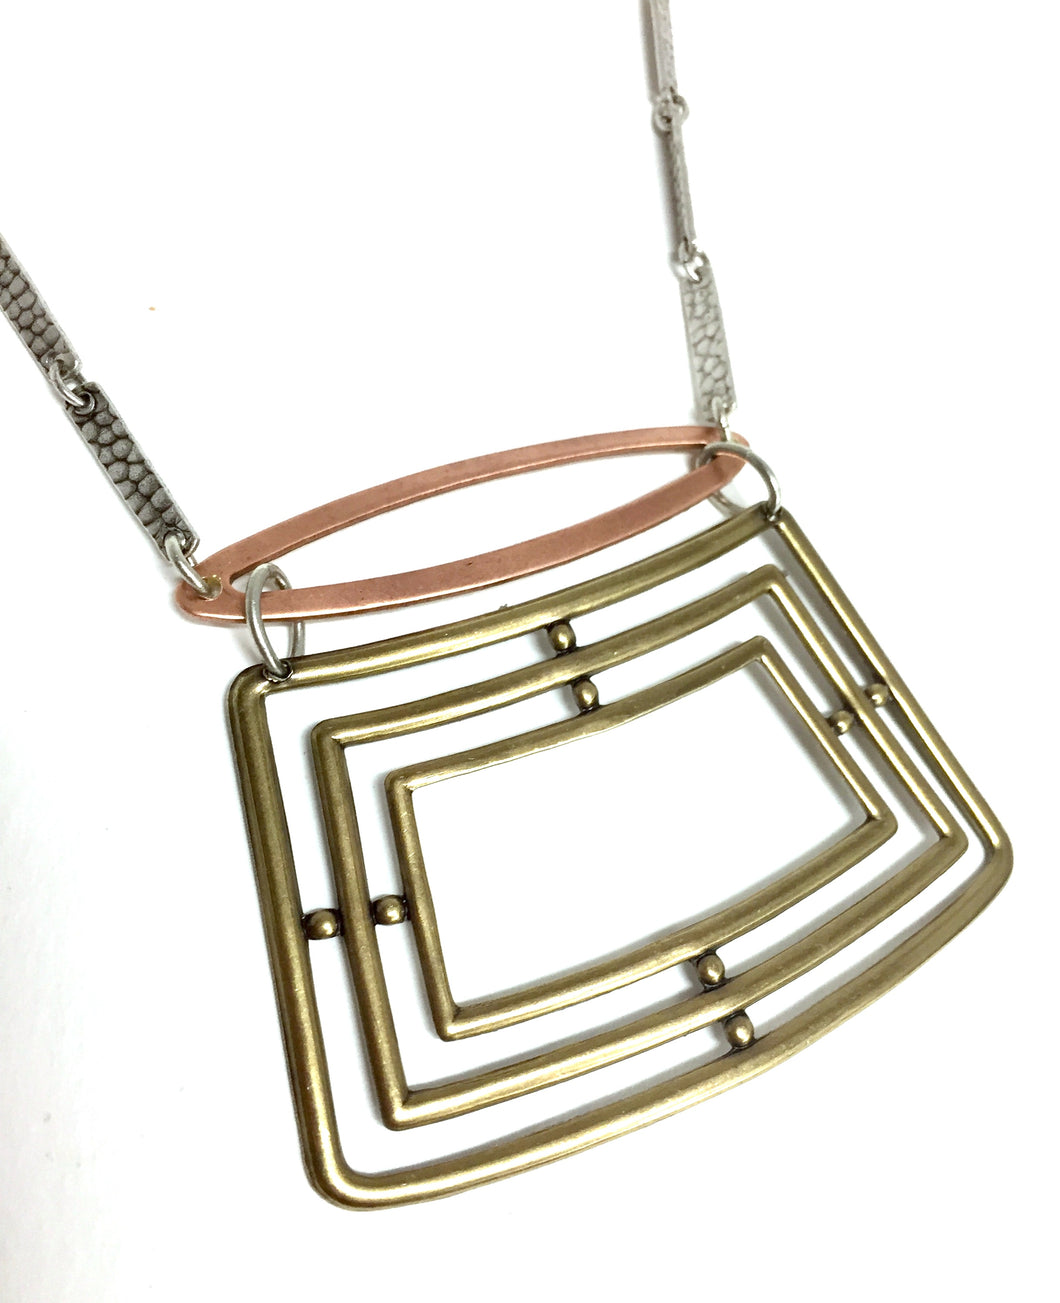 Necklace Concentric Rectangles